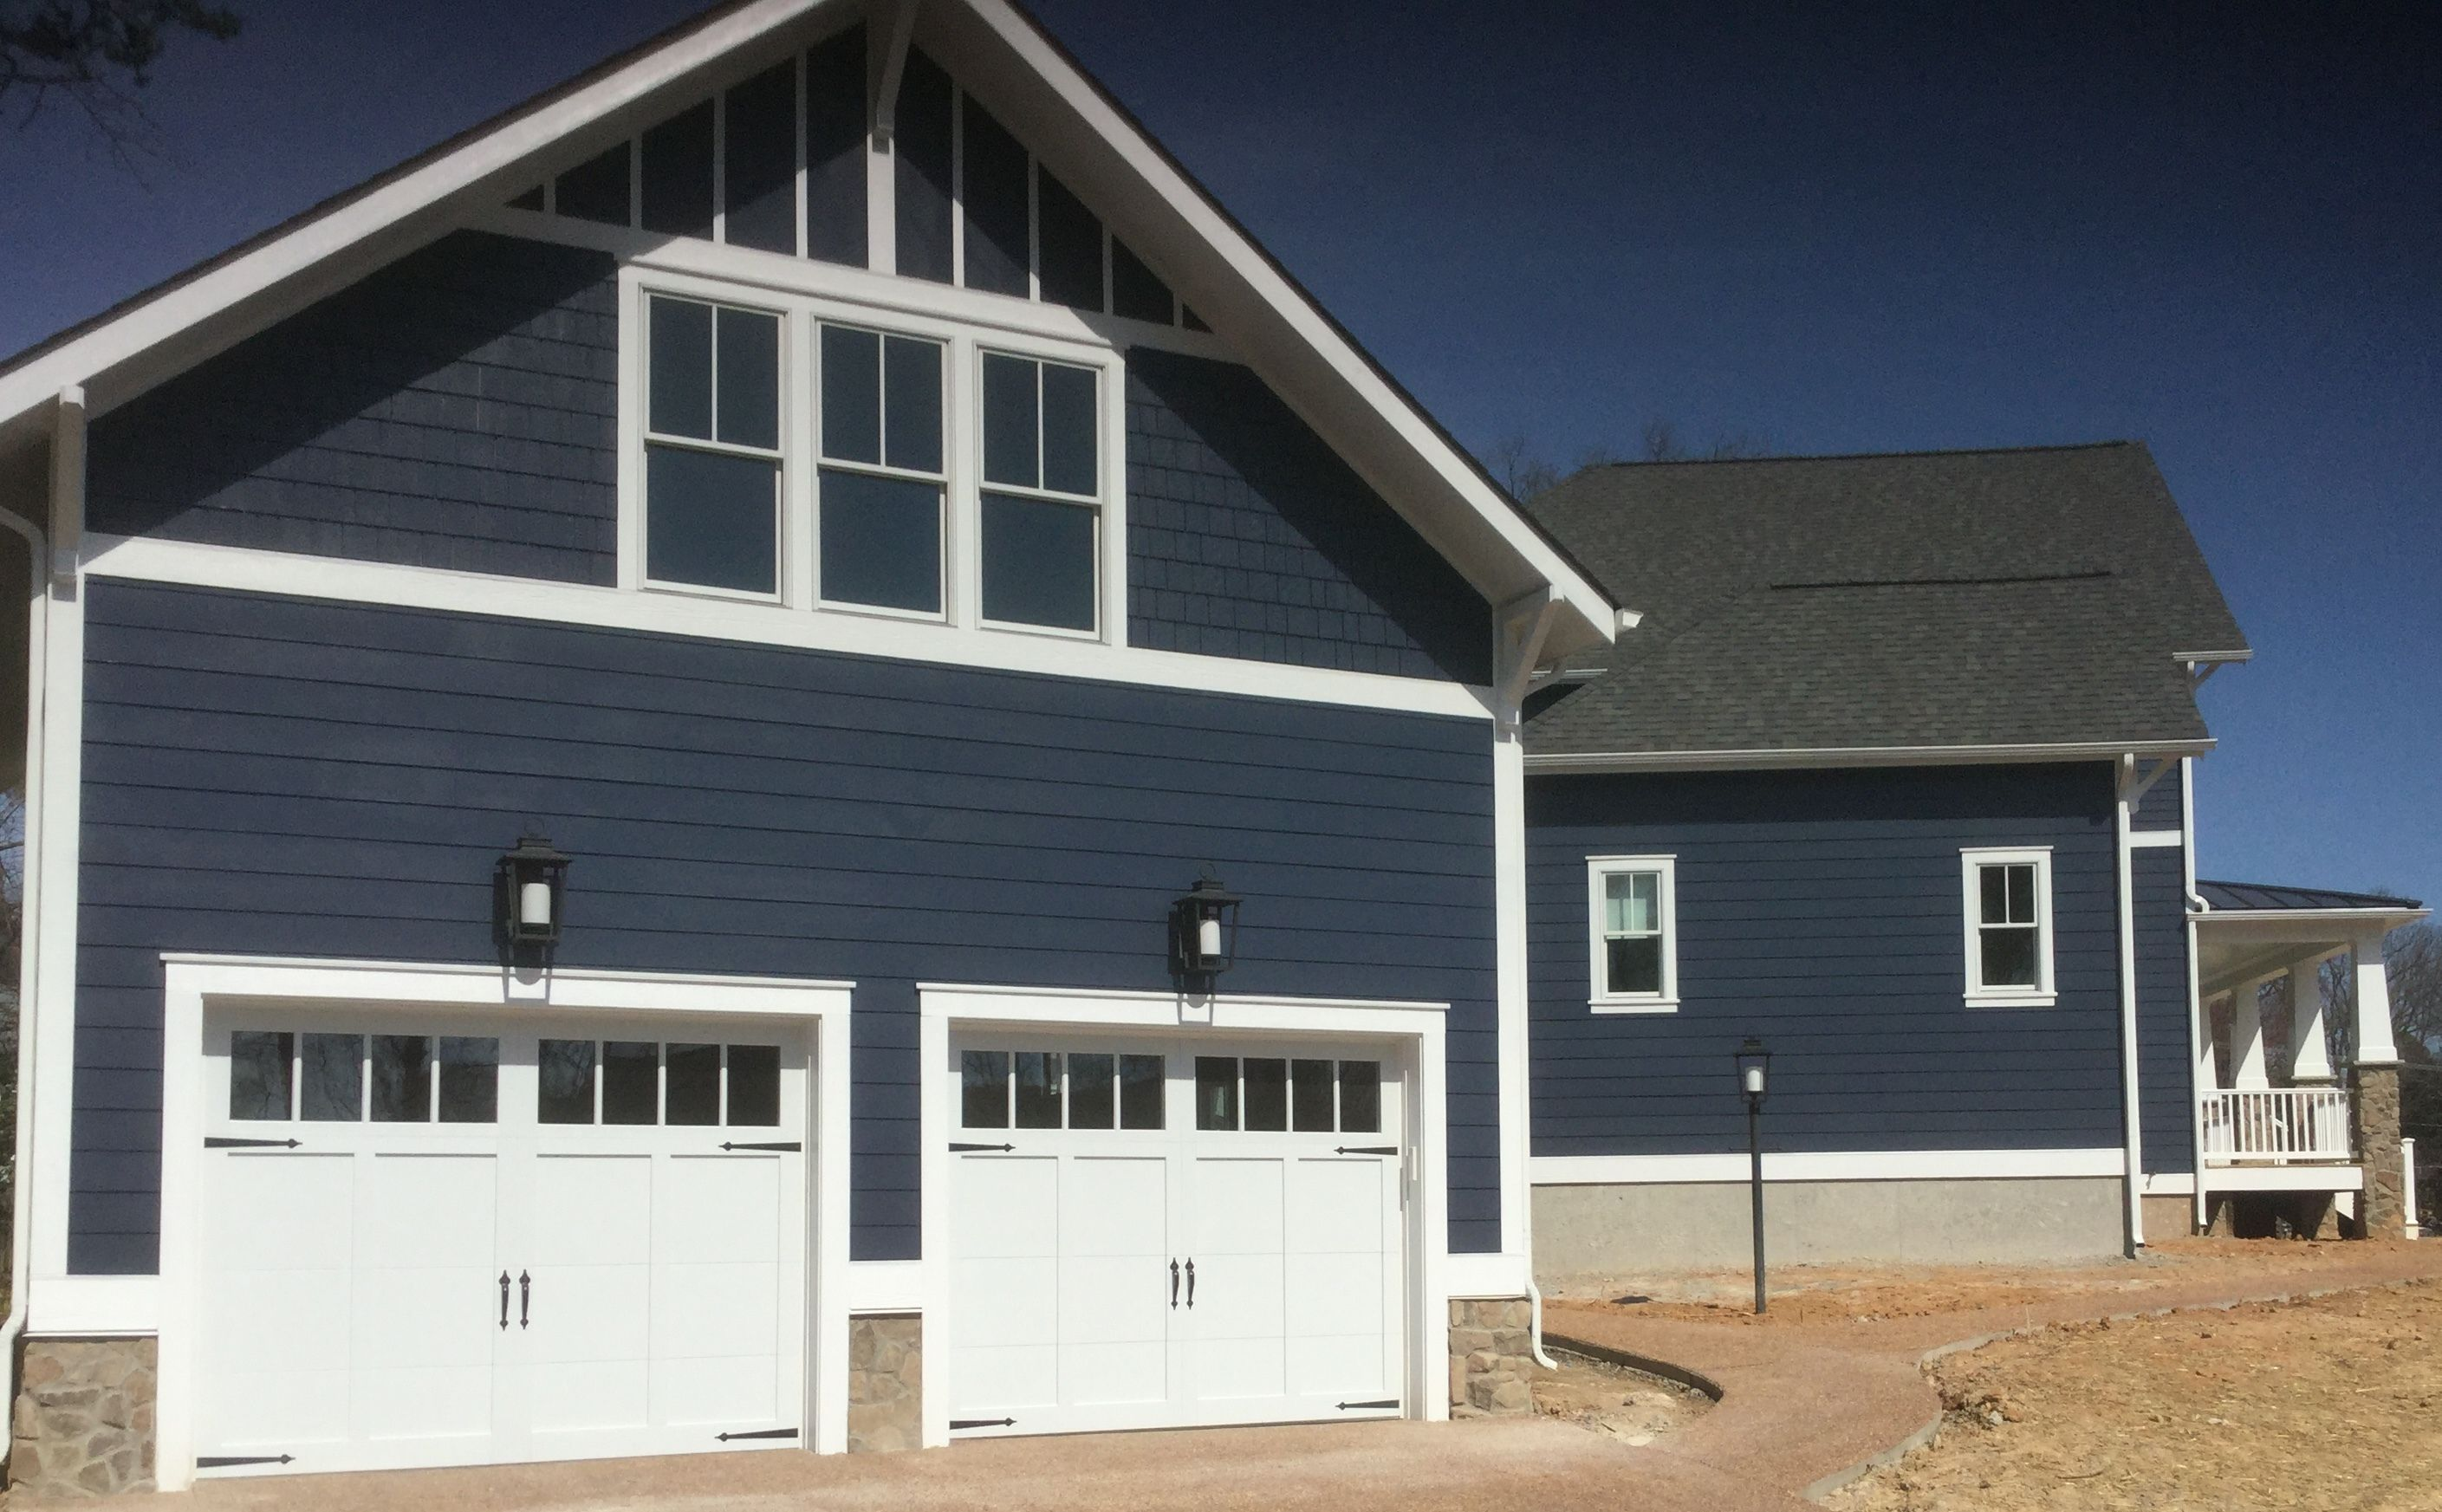 Two 9x7 Model 5630 Carriage style overlay garage doors with Square Madison top glass installed by the Richmond store.